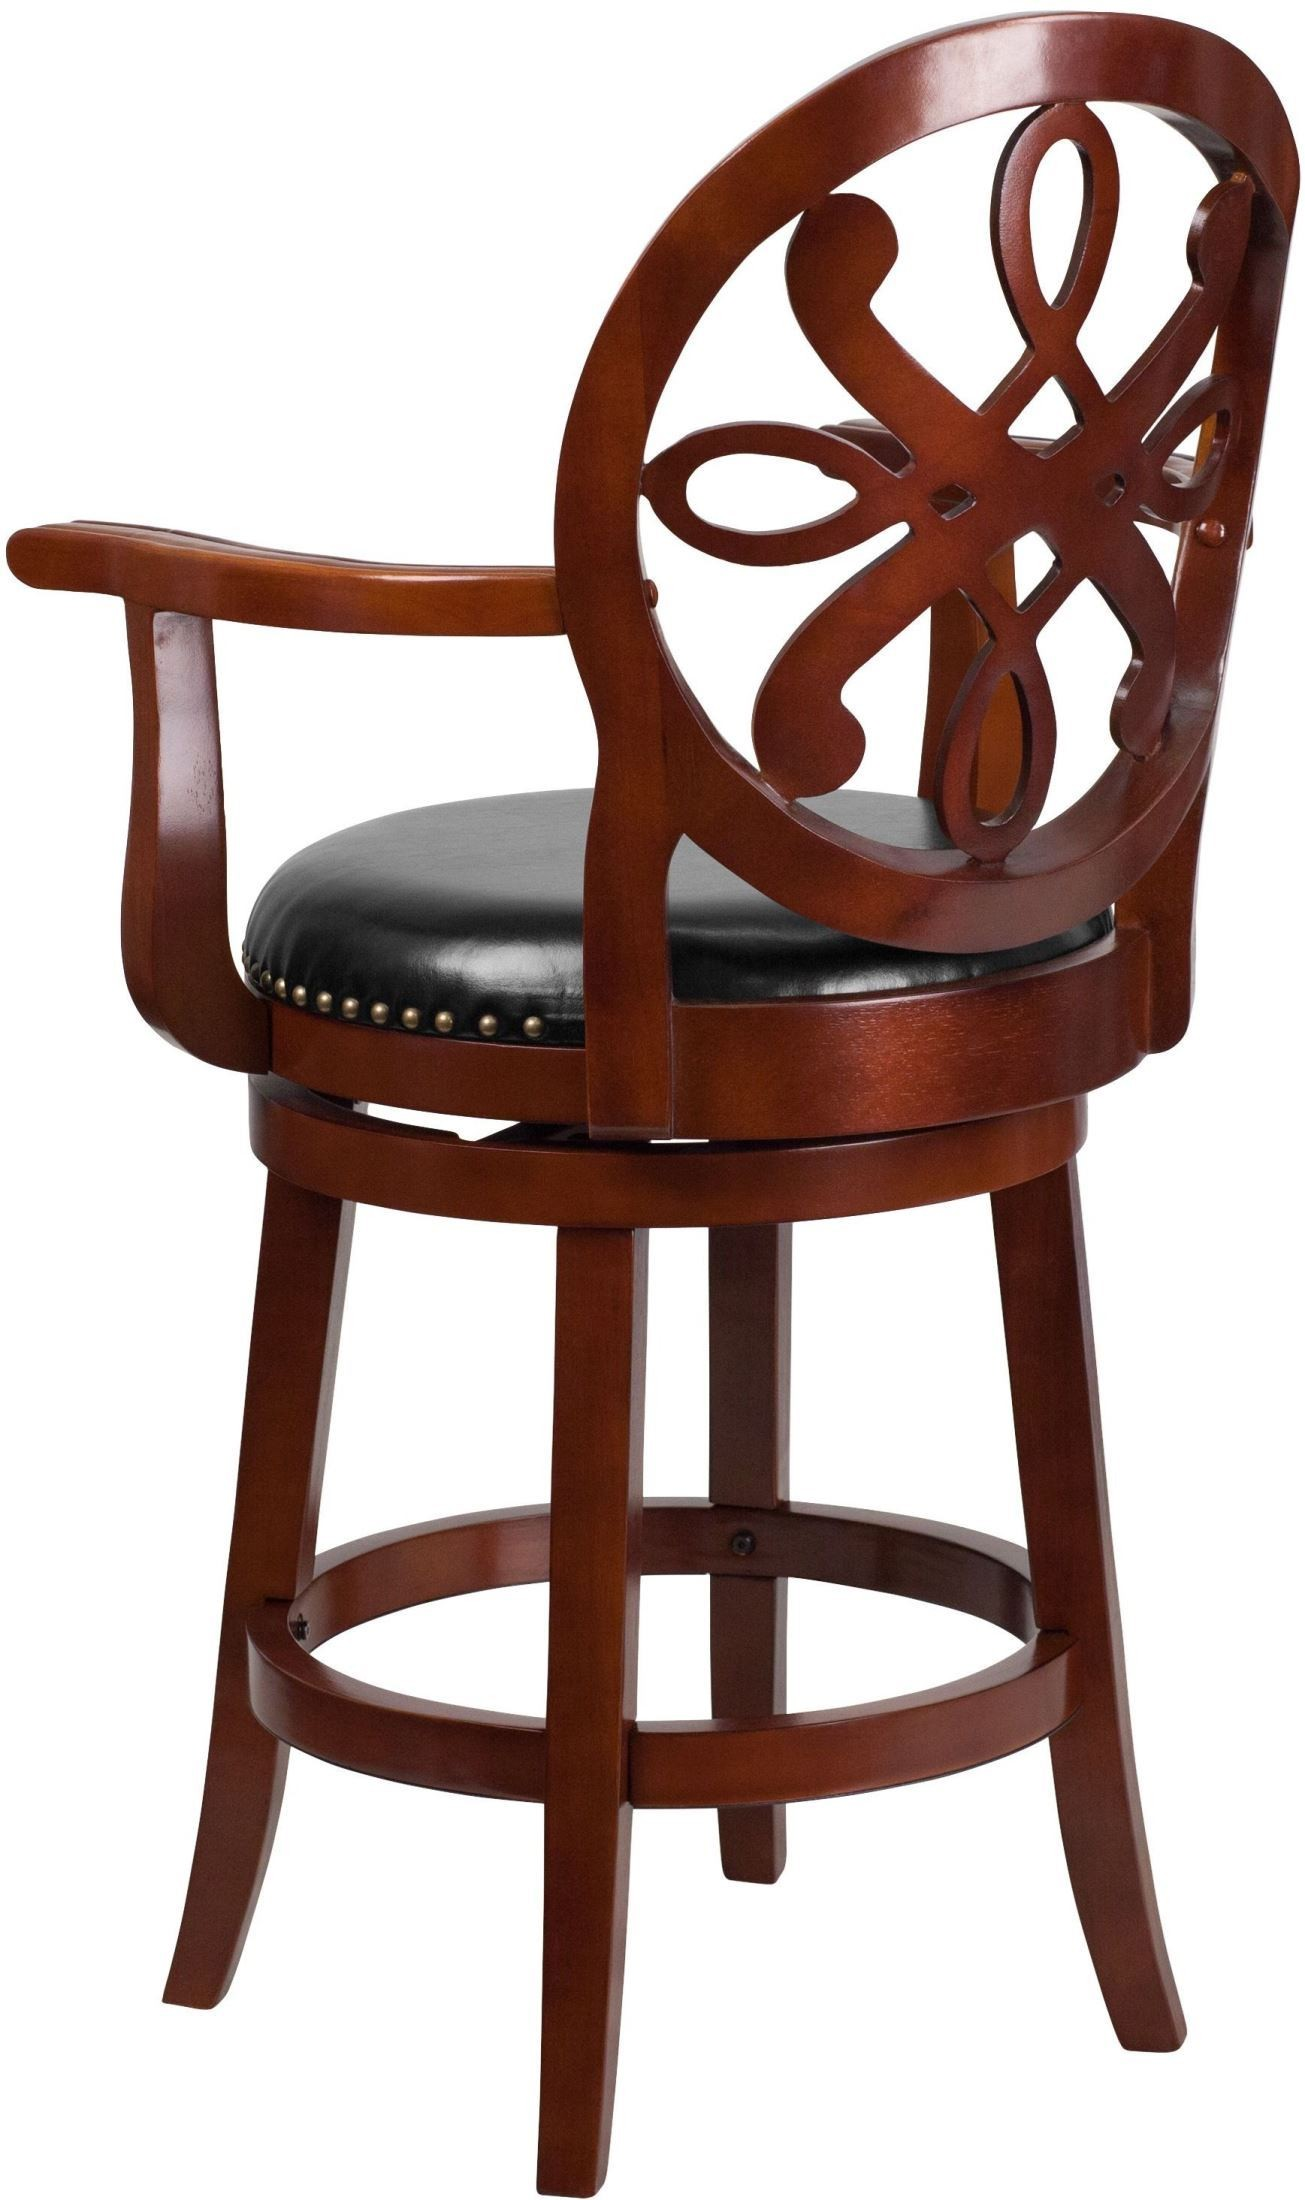 26 Quot Black Swivel High Cherry Wood Counter Stool With Arms